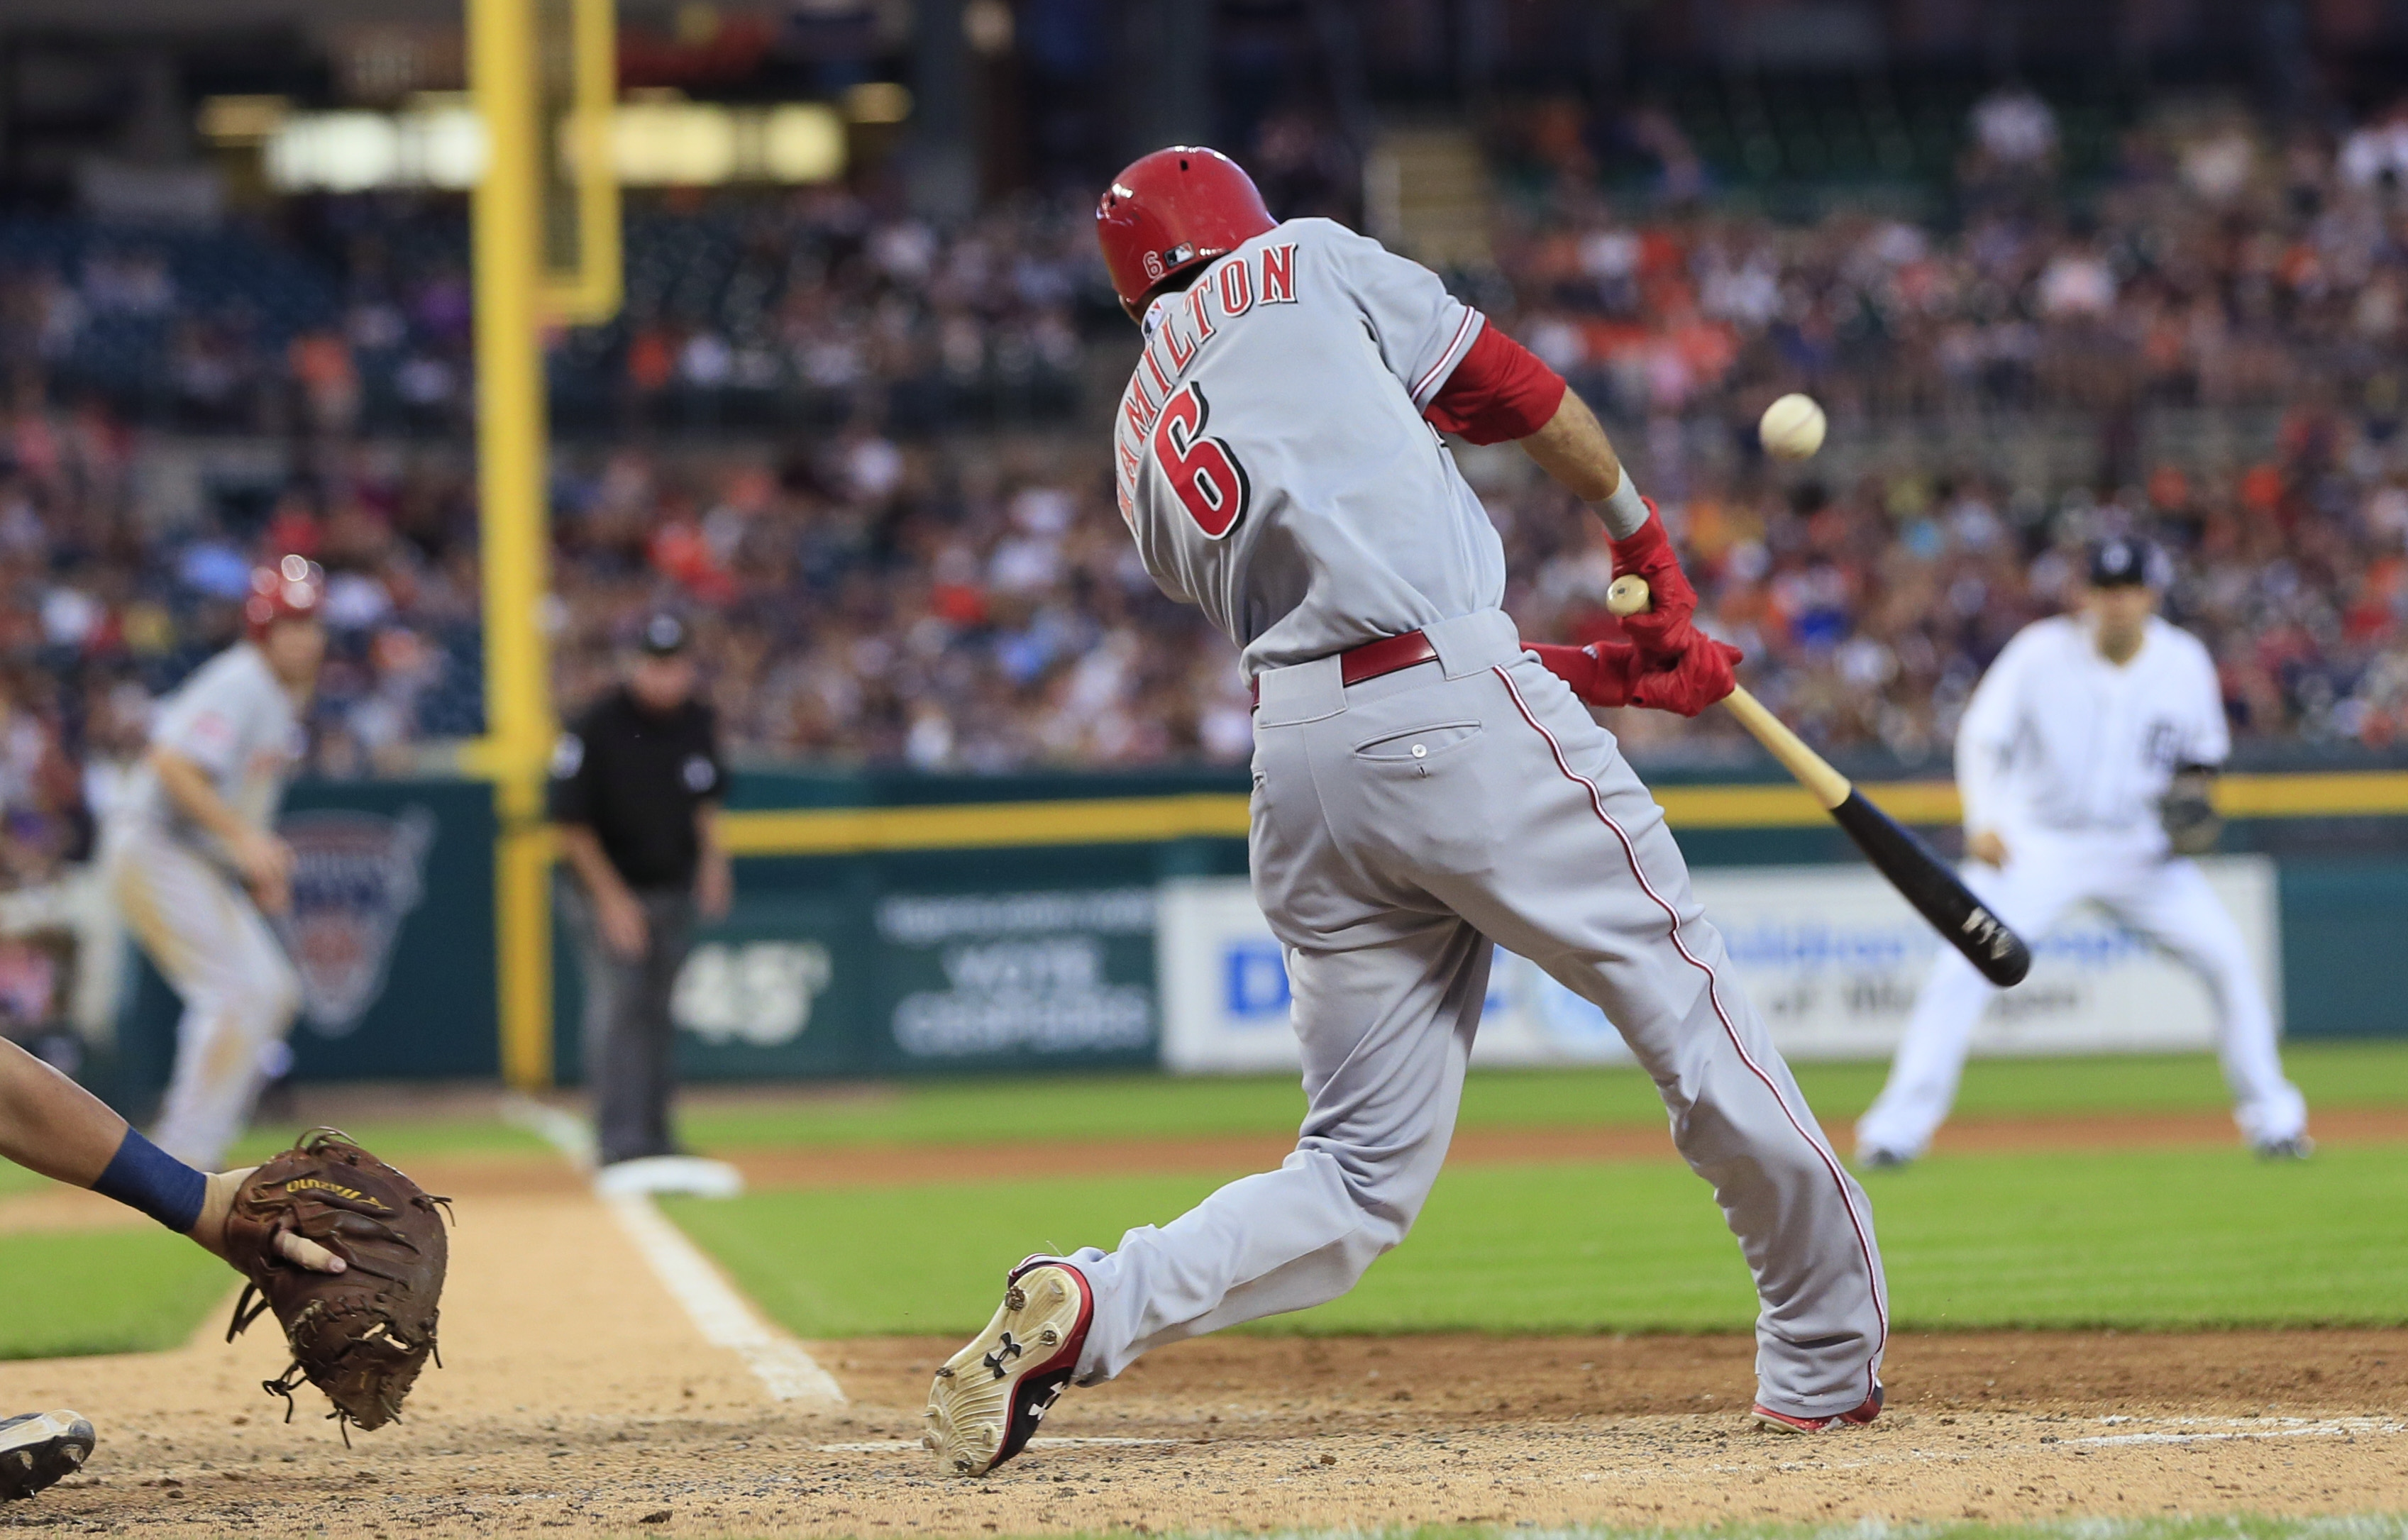 Cincinnati Reds' Billy Hamilton connects for a run scoring single to left field during the seventh inning of a baseball game against the Detroit Tigers, Tuesday, June 16, 2015, in Detroit. Jay Bruce scored for the Reds. (AP Photo/Carlos Osorio)